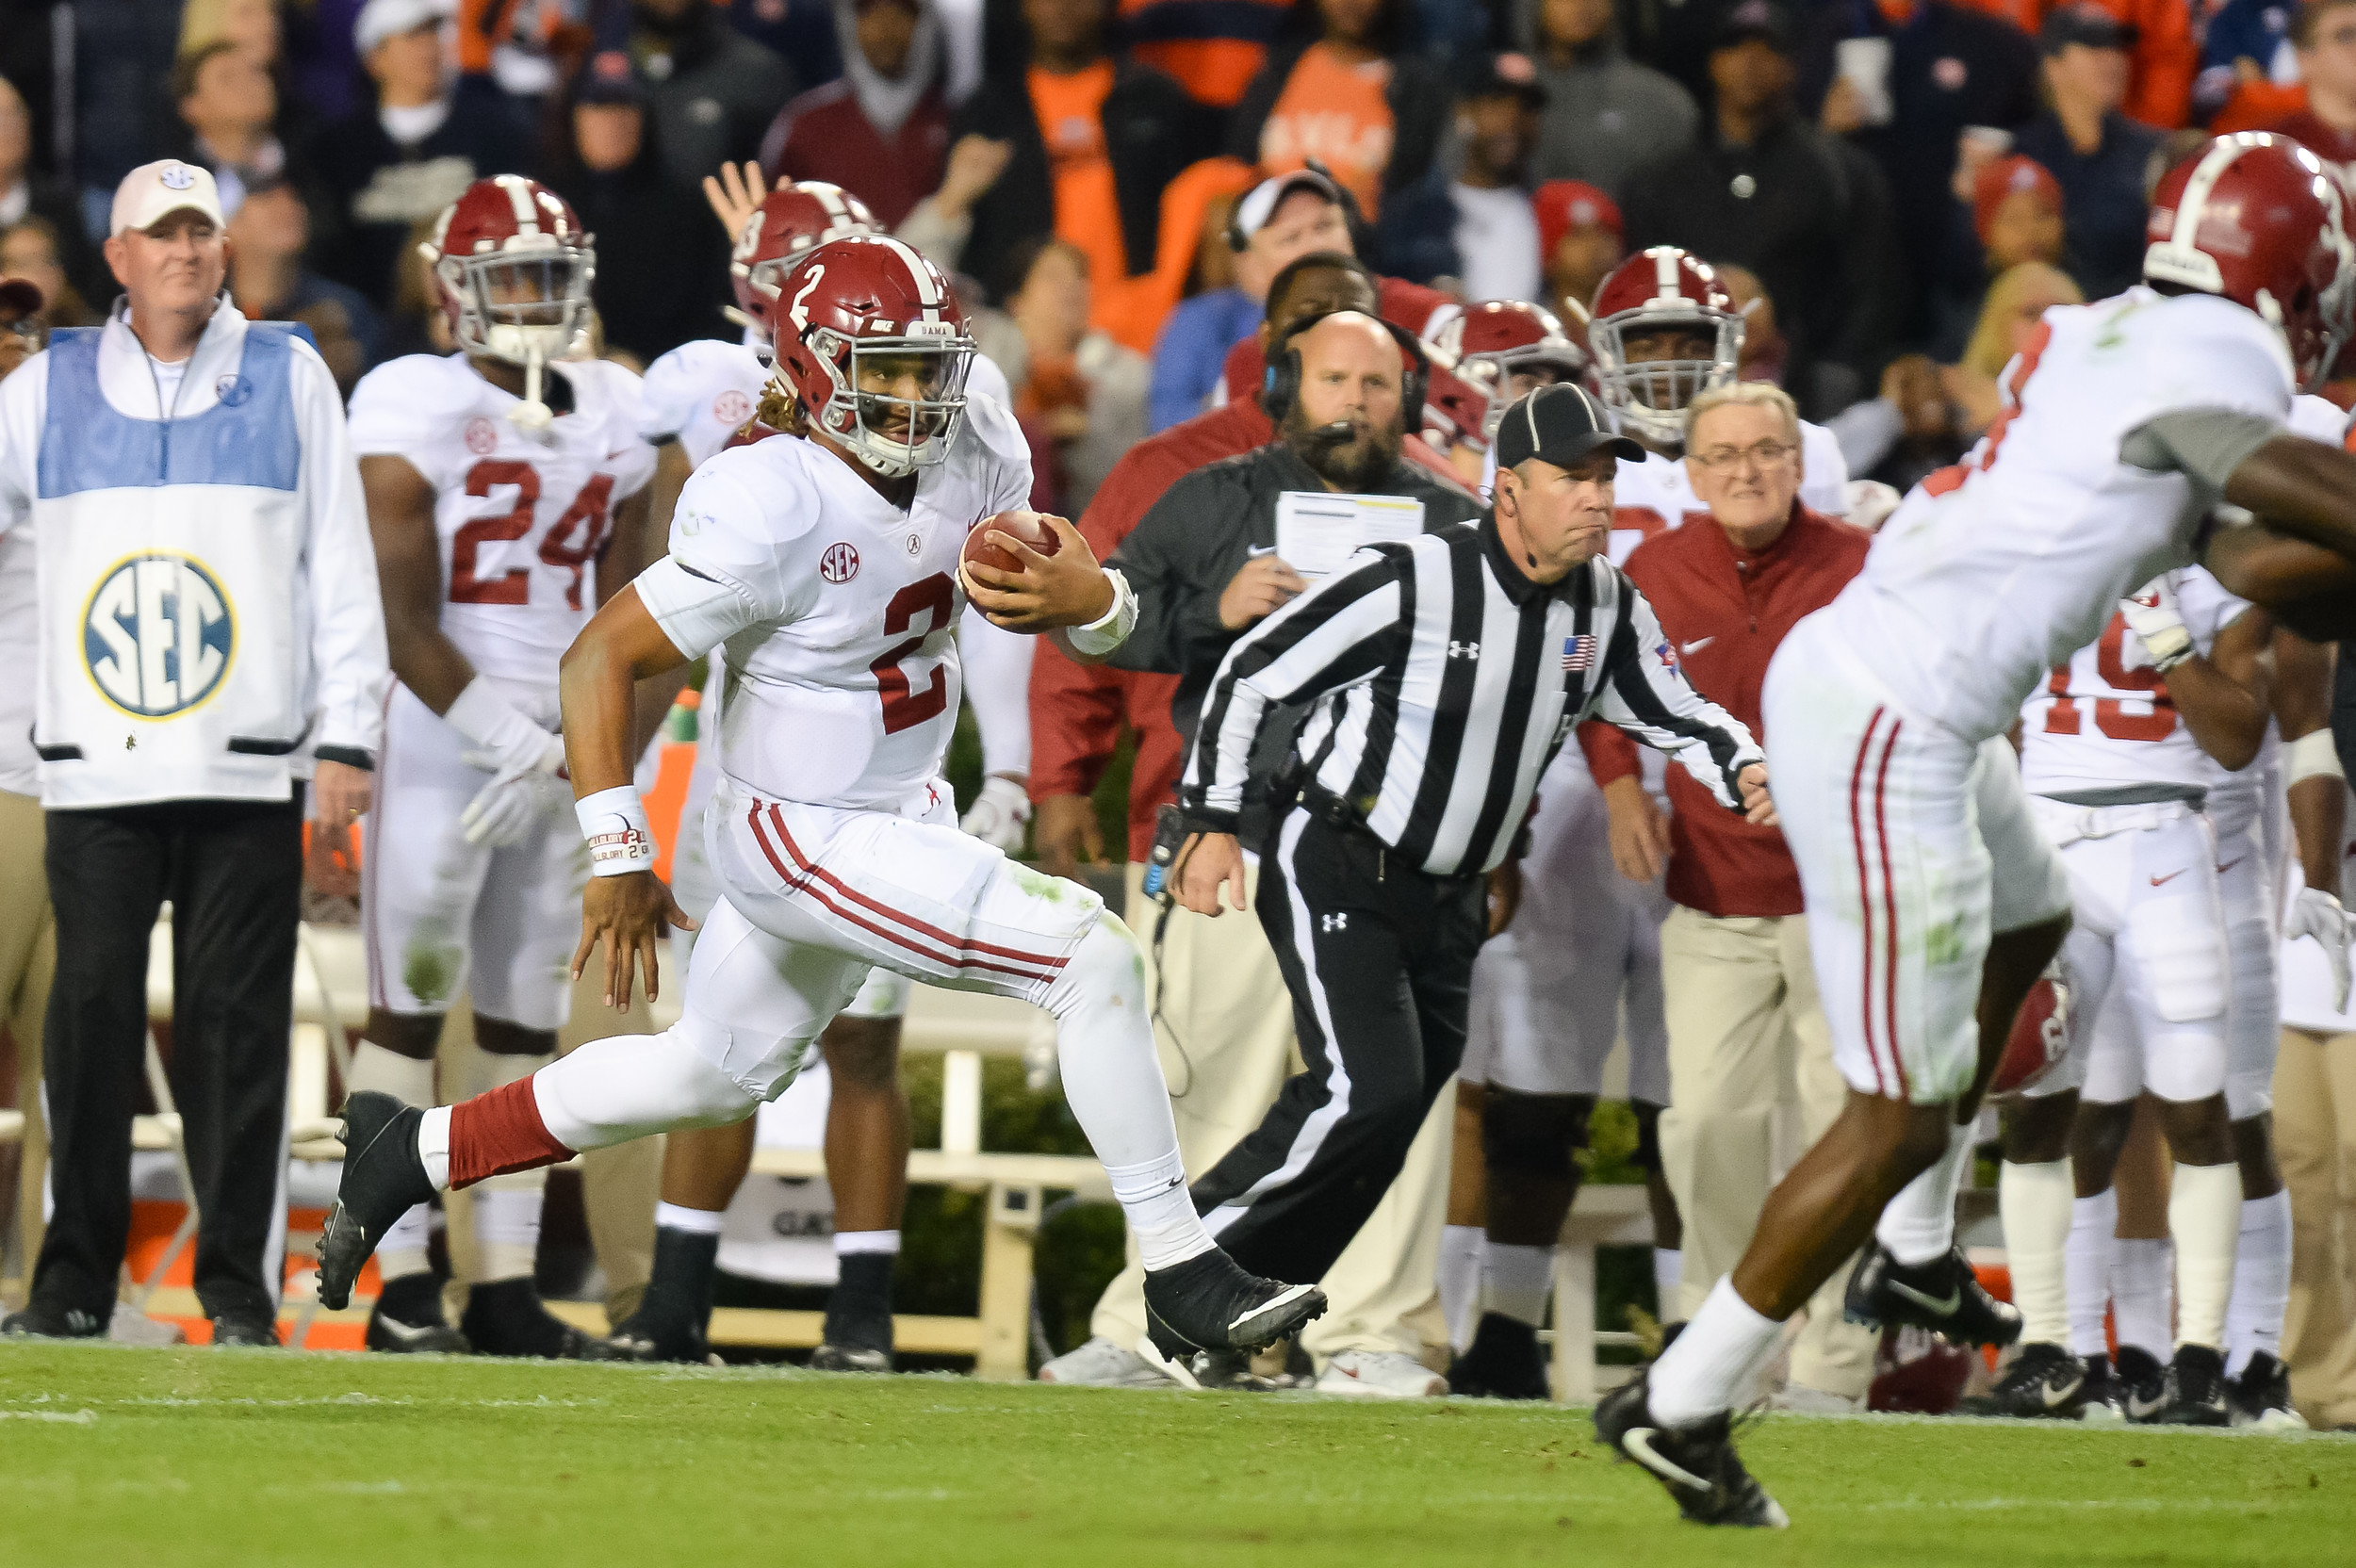 Alabama Crimson Tide quarterback Jalen Hurts (2) runs for a first down during the second half of Saturday's game, at Jordan-Hare Stadium.